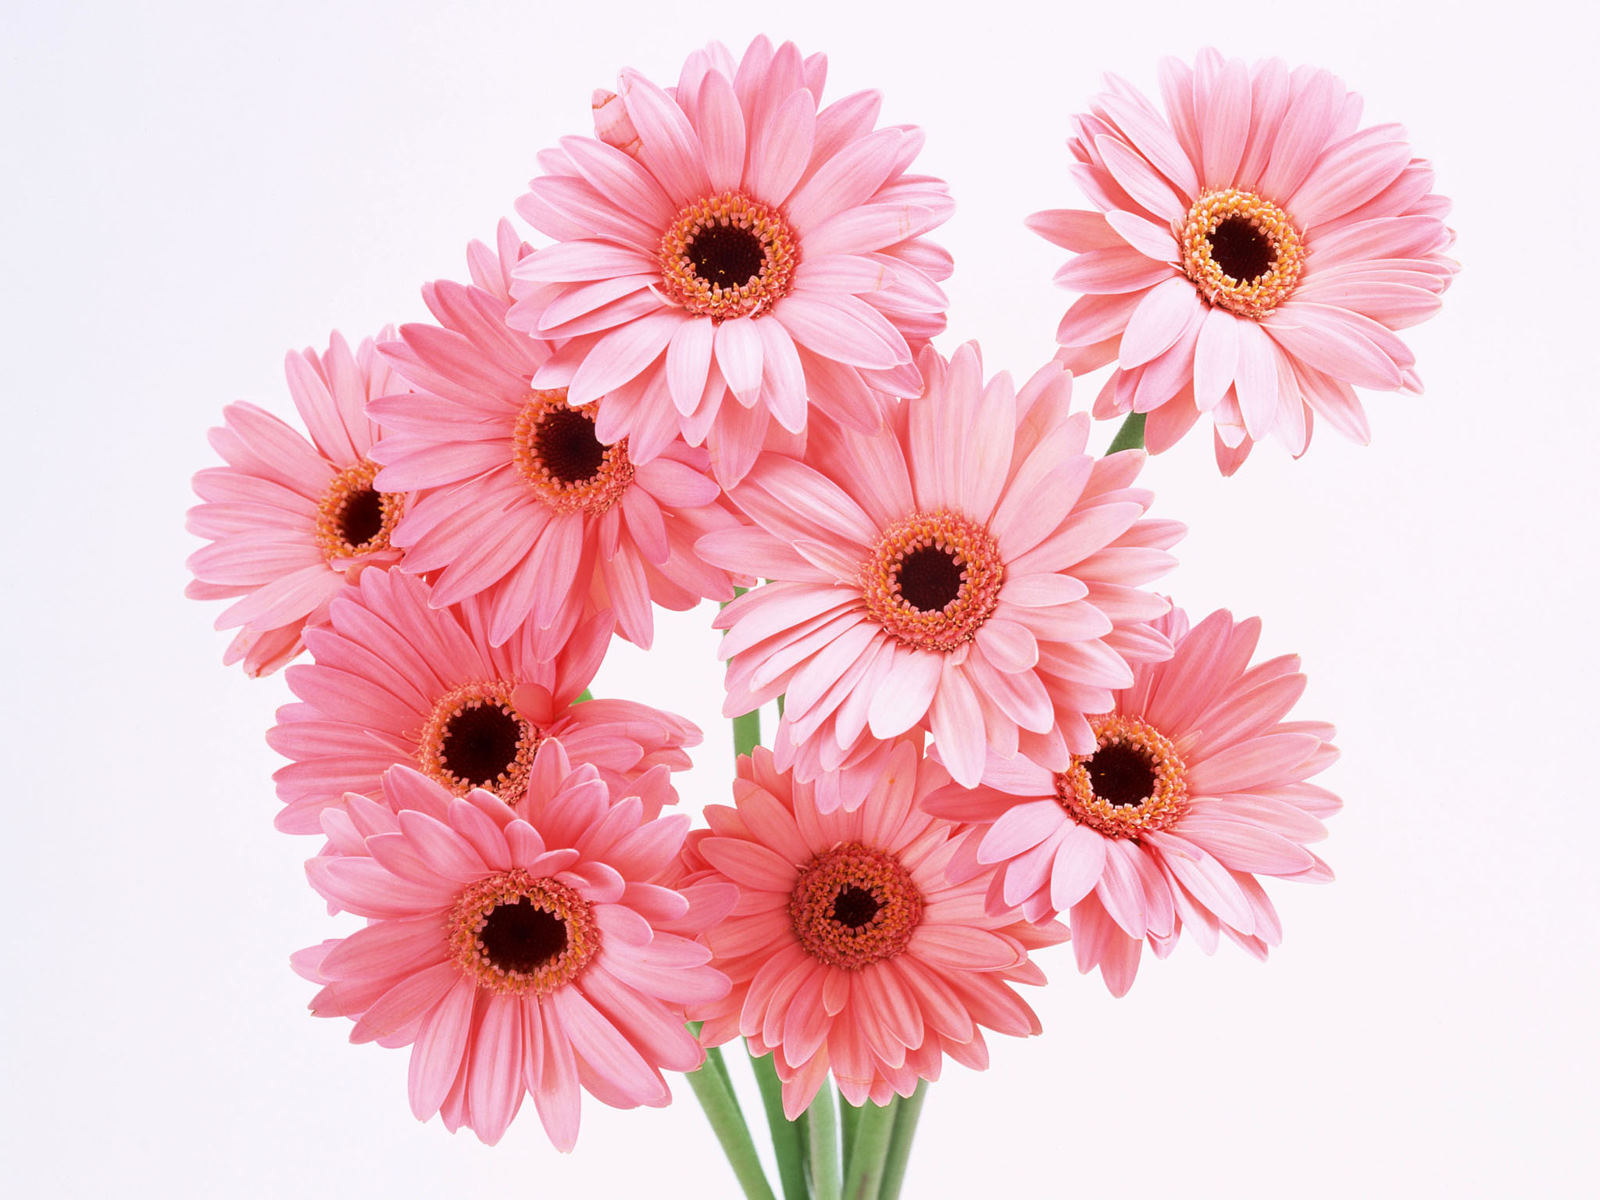 Flowers & Planets: Pink Flowers Wallpaper